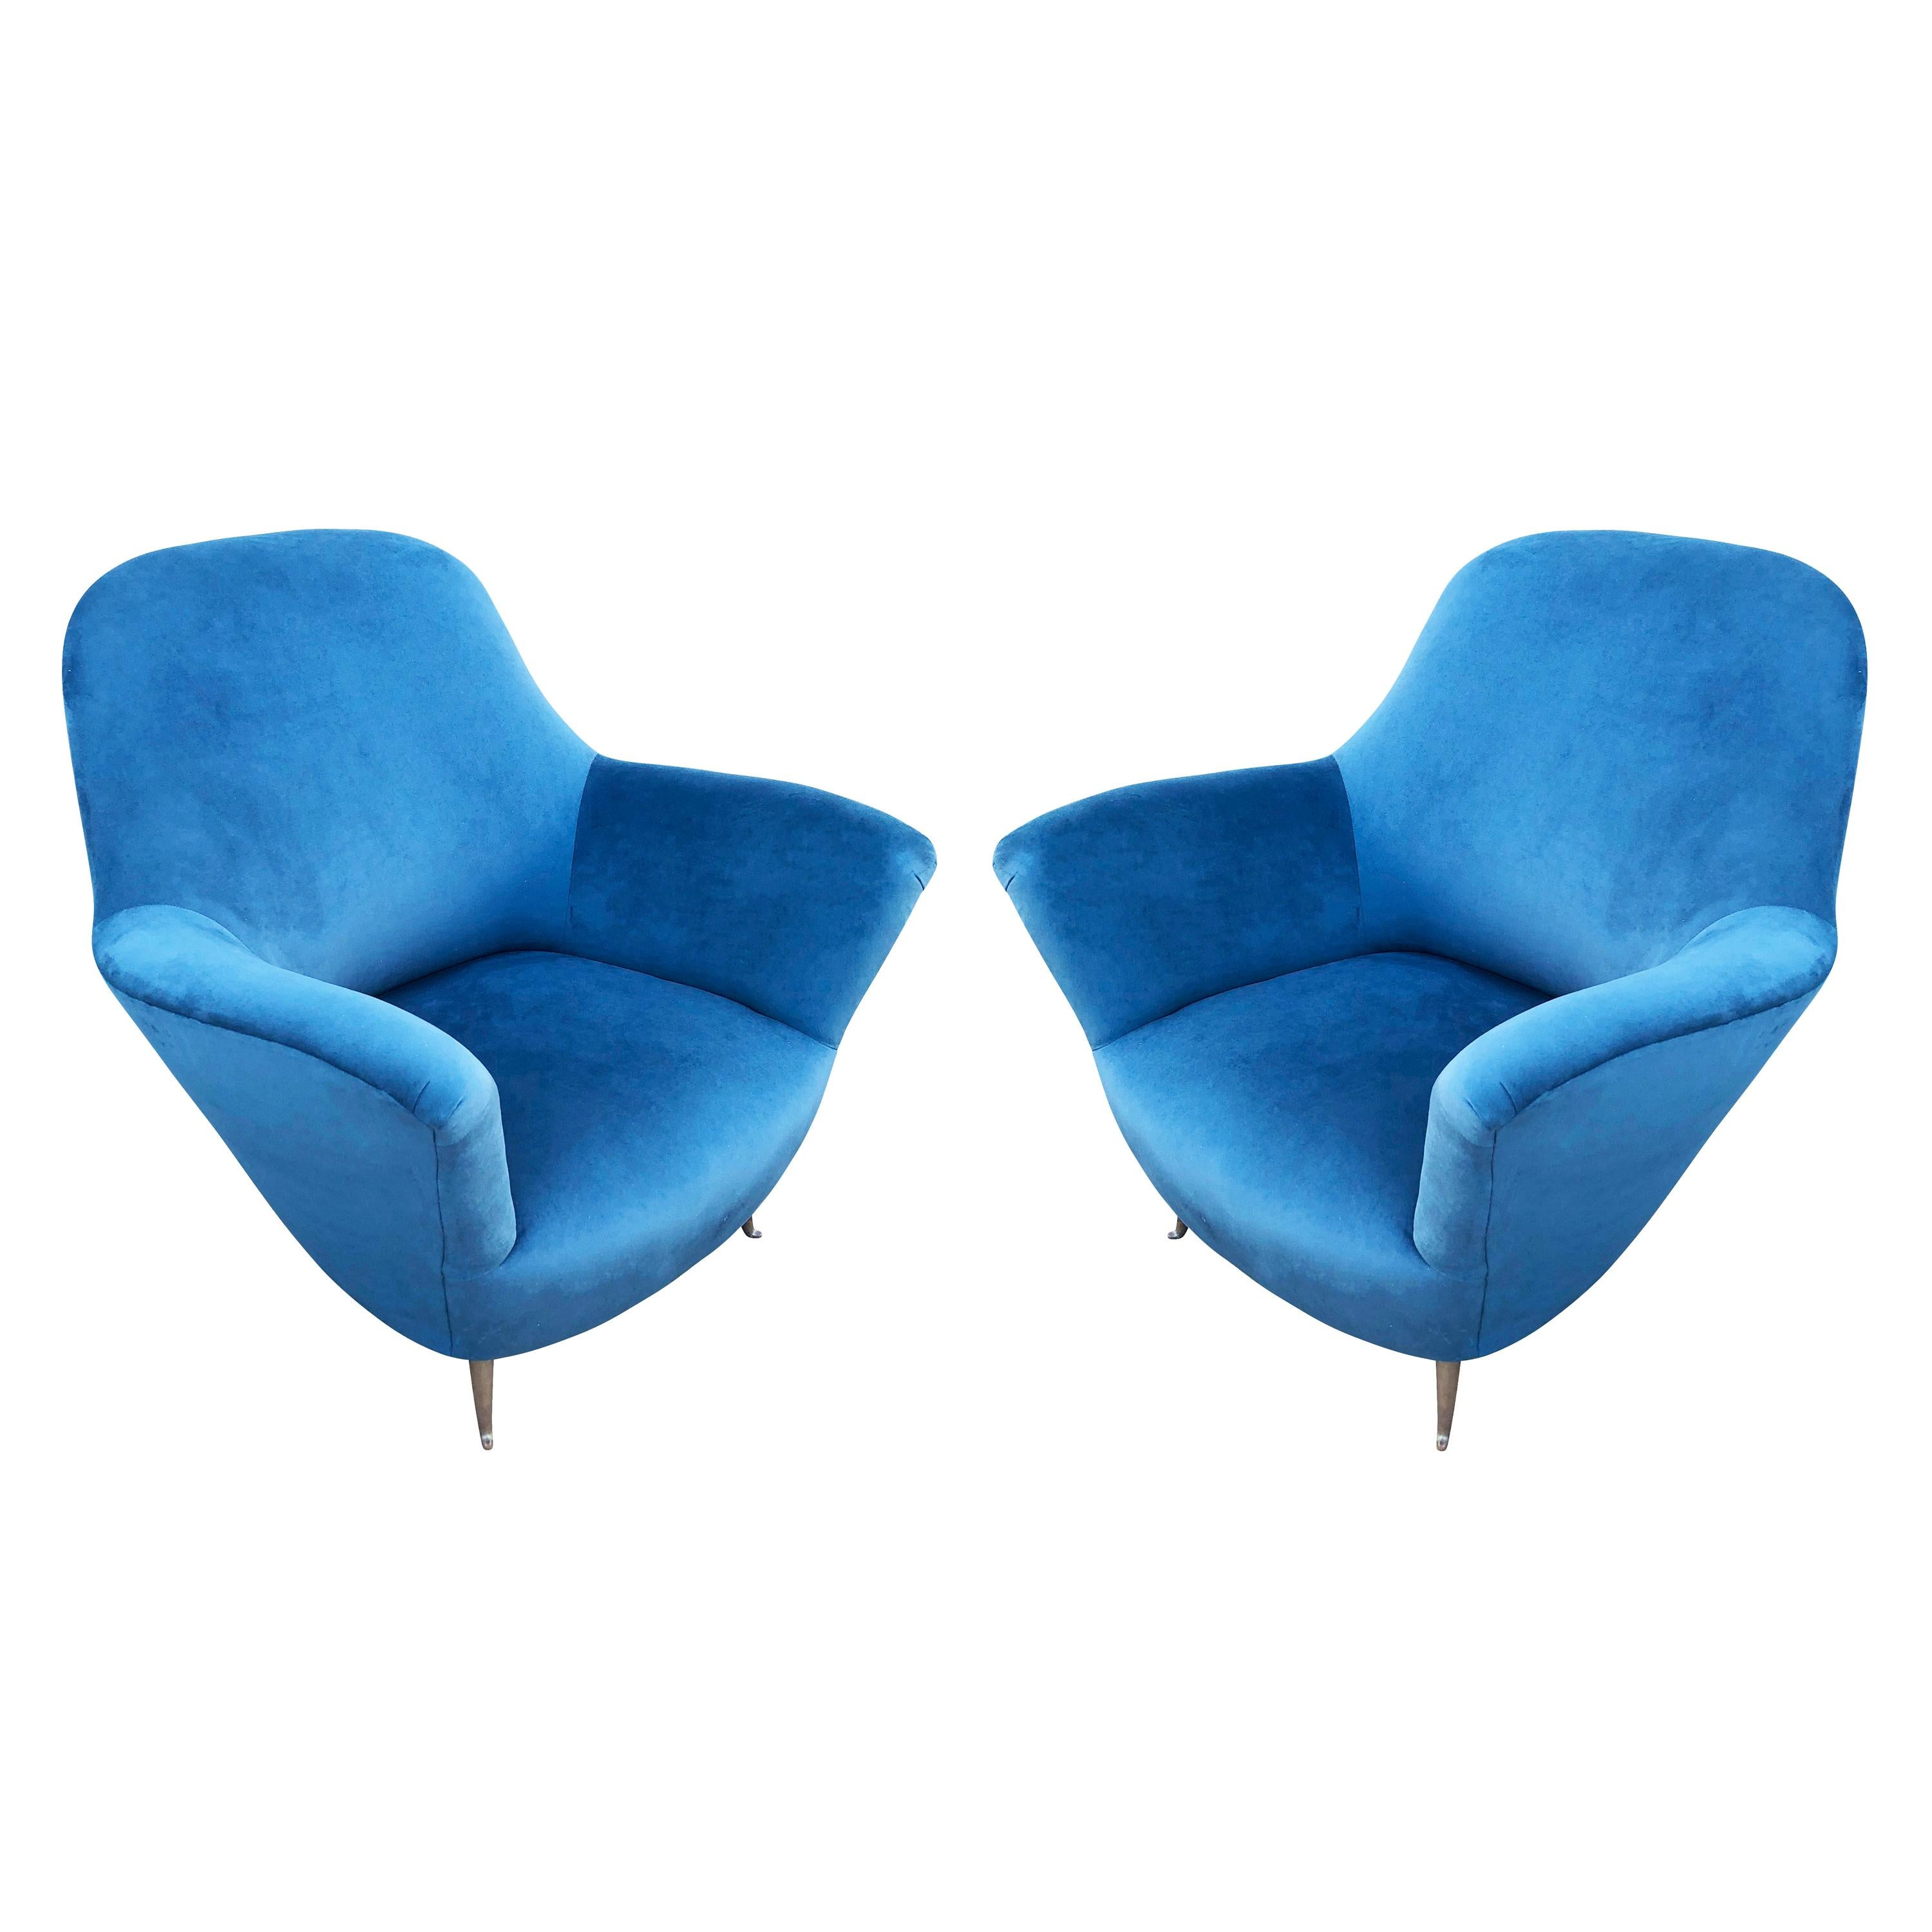 Pair of Lounge Chairs by Veronesi for ISA, Italy, 1960s